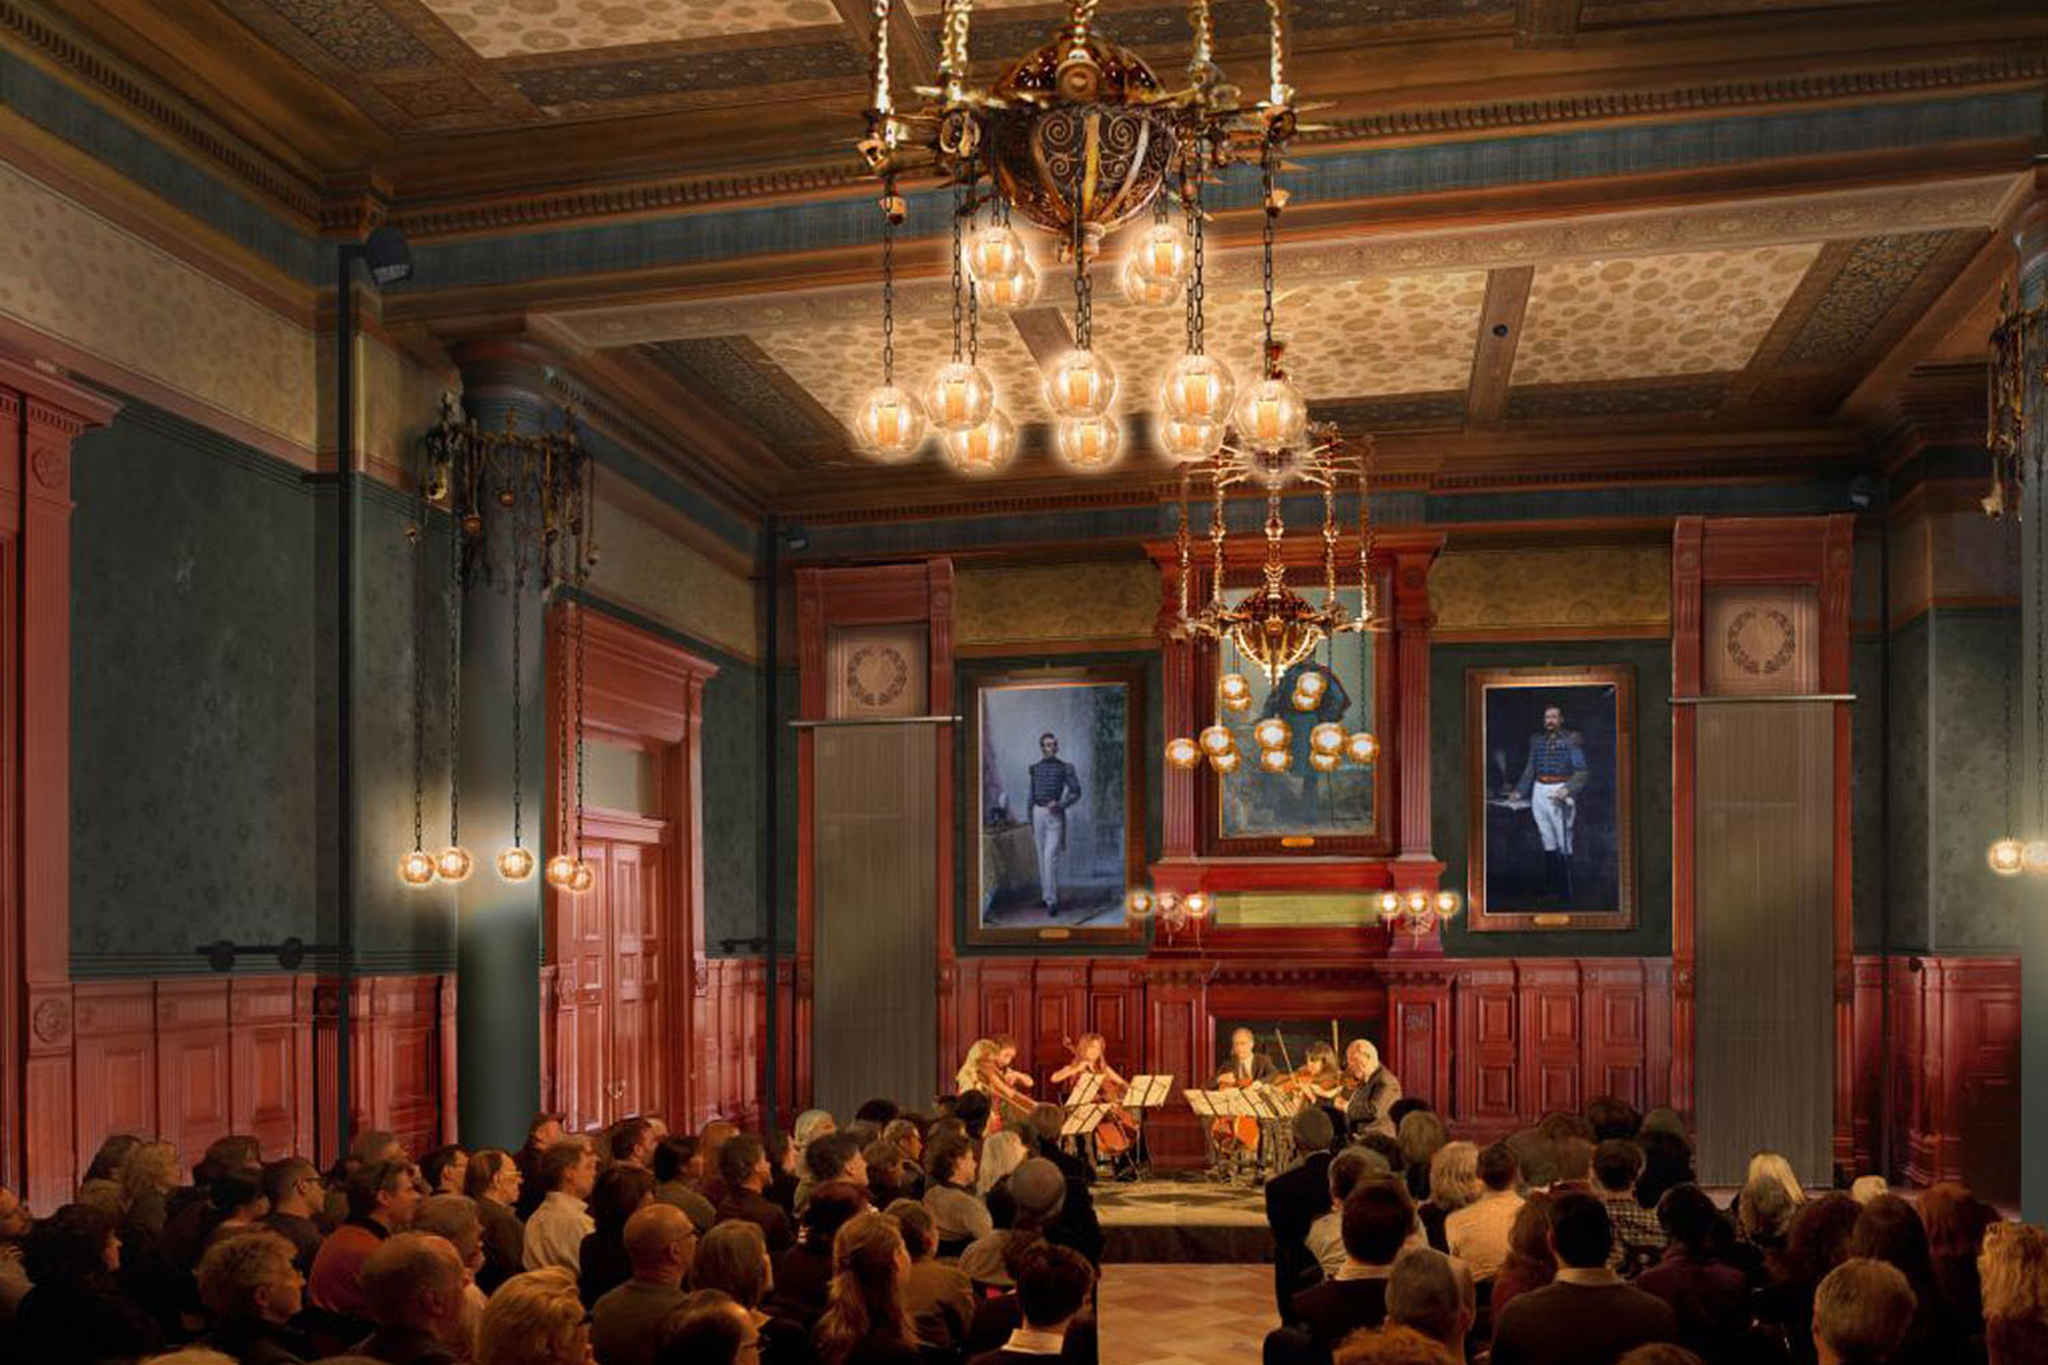 Arts & Culture: Park Avenue Armory's Board of Officers Room